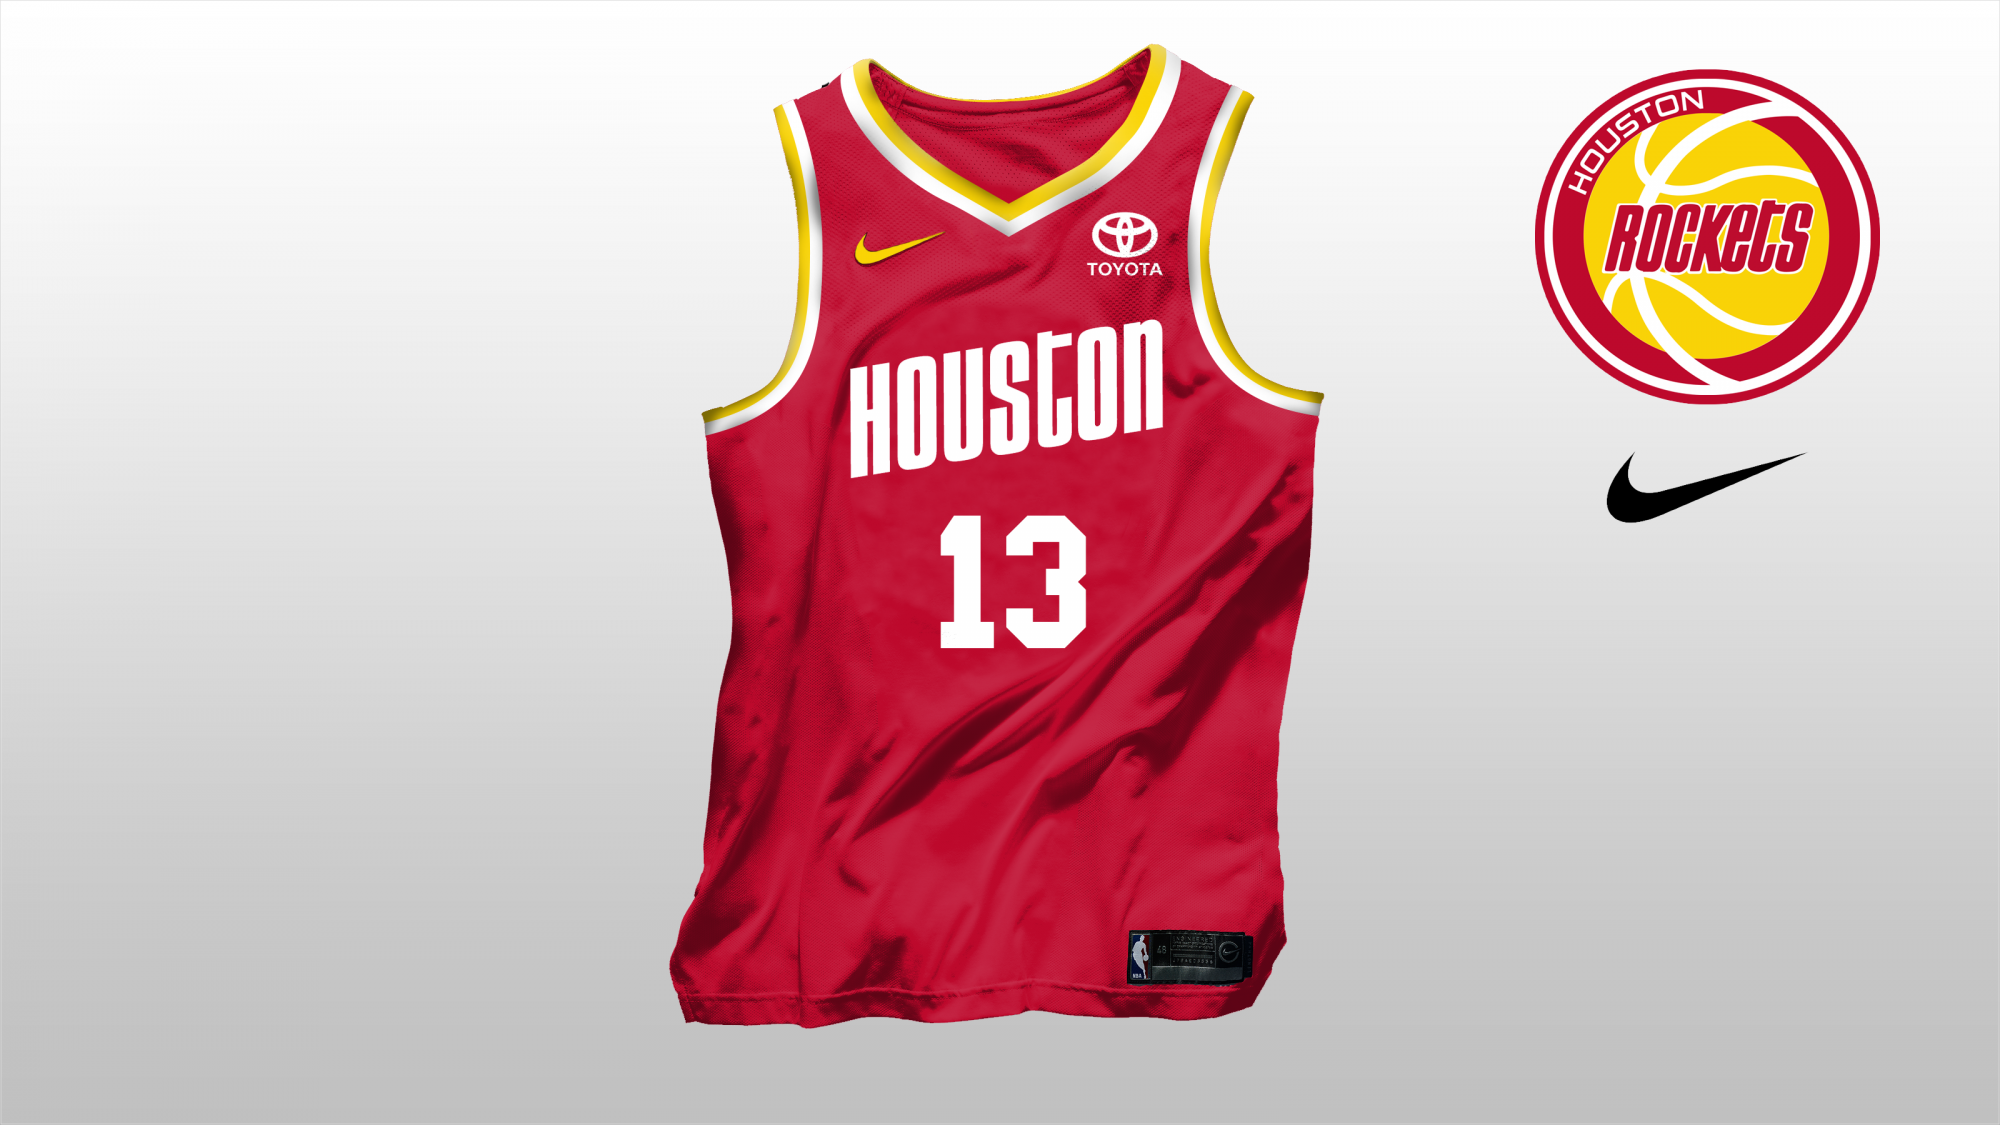 f3c34b4a ... Rockets NIKE away.png NLSC Forum • Fictional JerseyCharlotte Hornets  Released ...